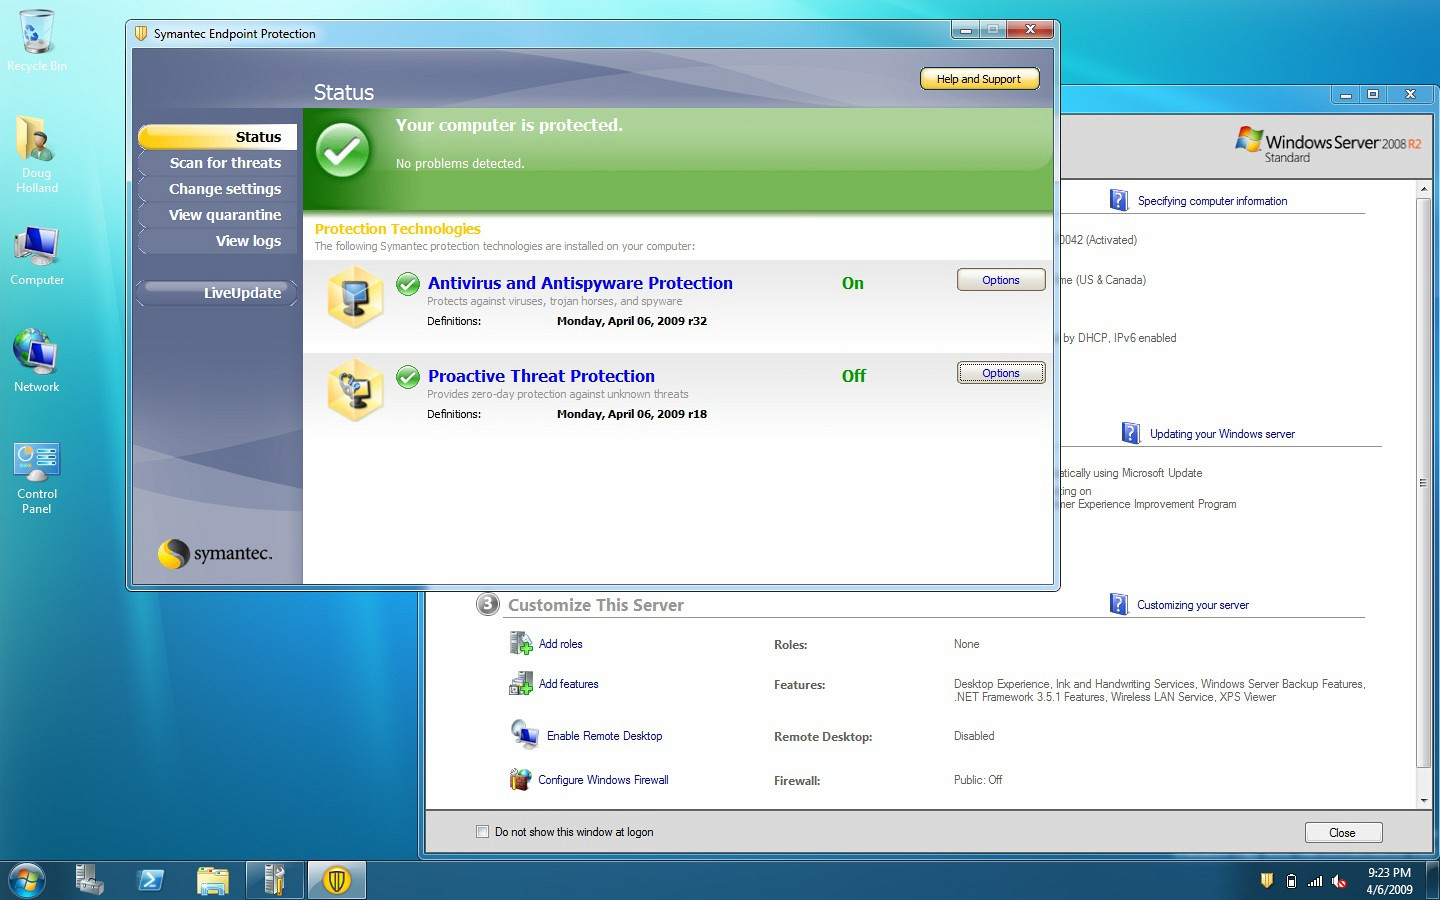 Virus Definitions not updating with Symantec Corporate Edition 10.01